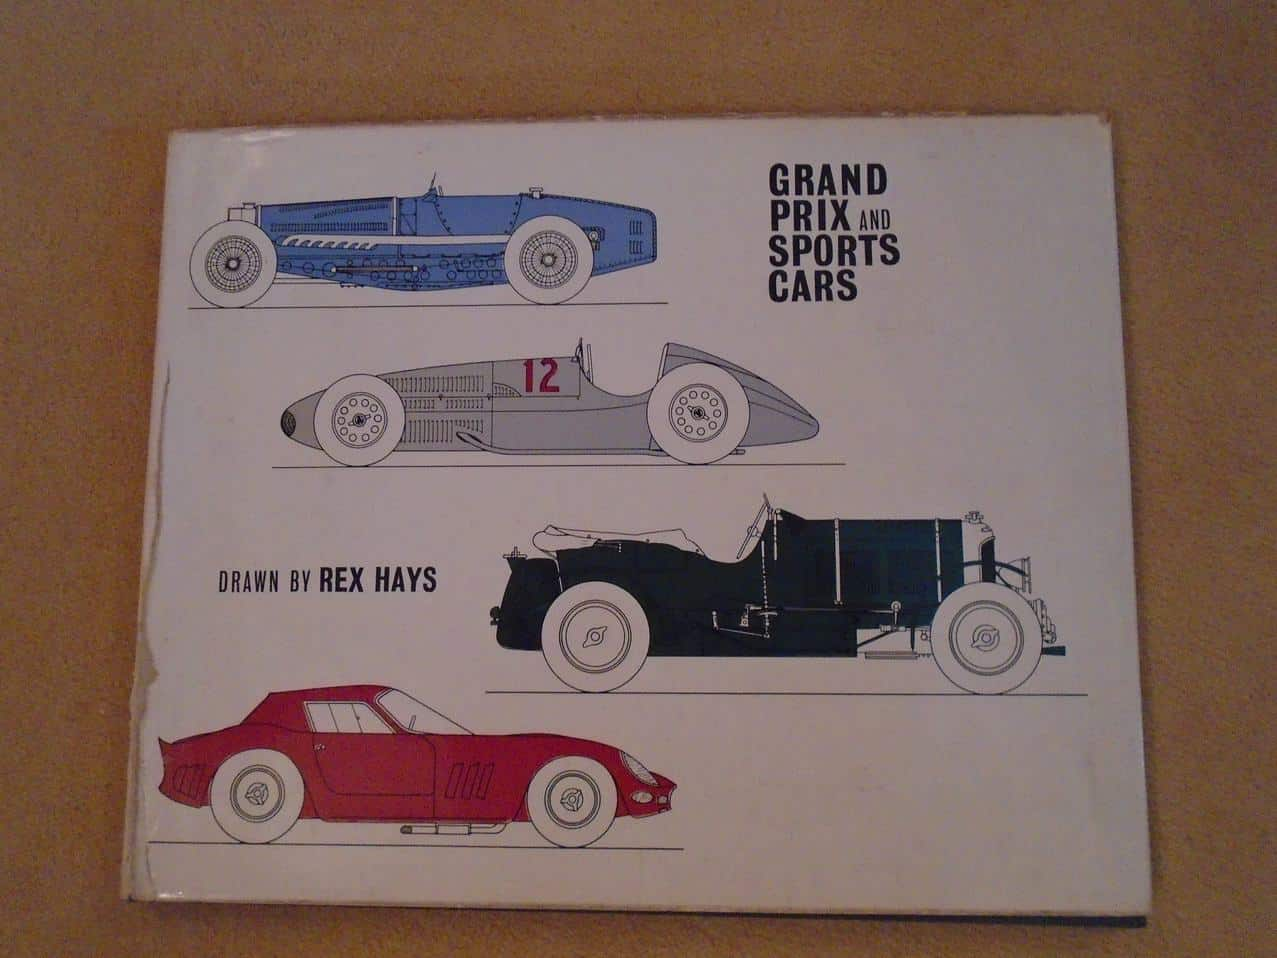 Grand Prix and Sports Cars